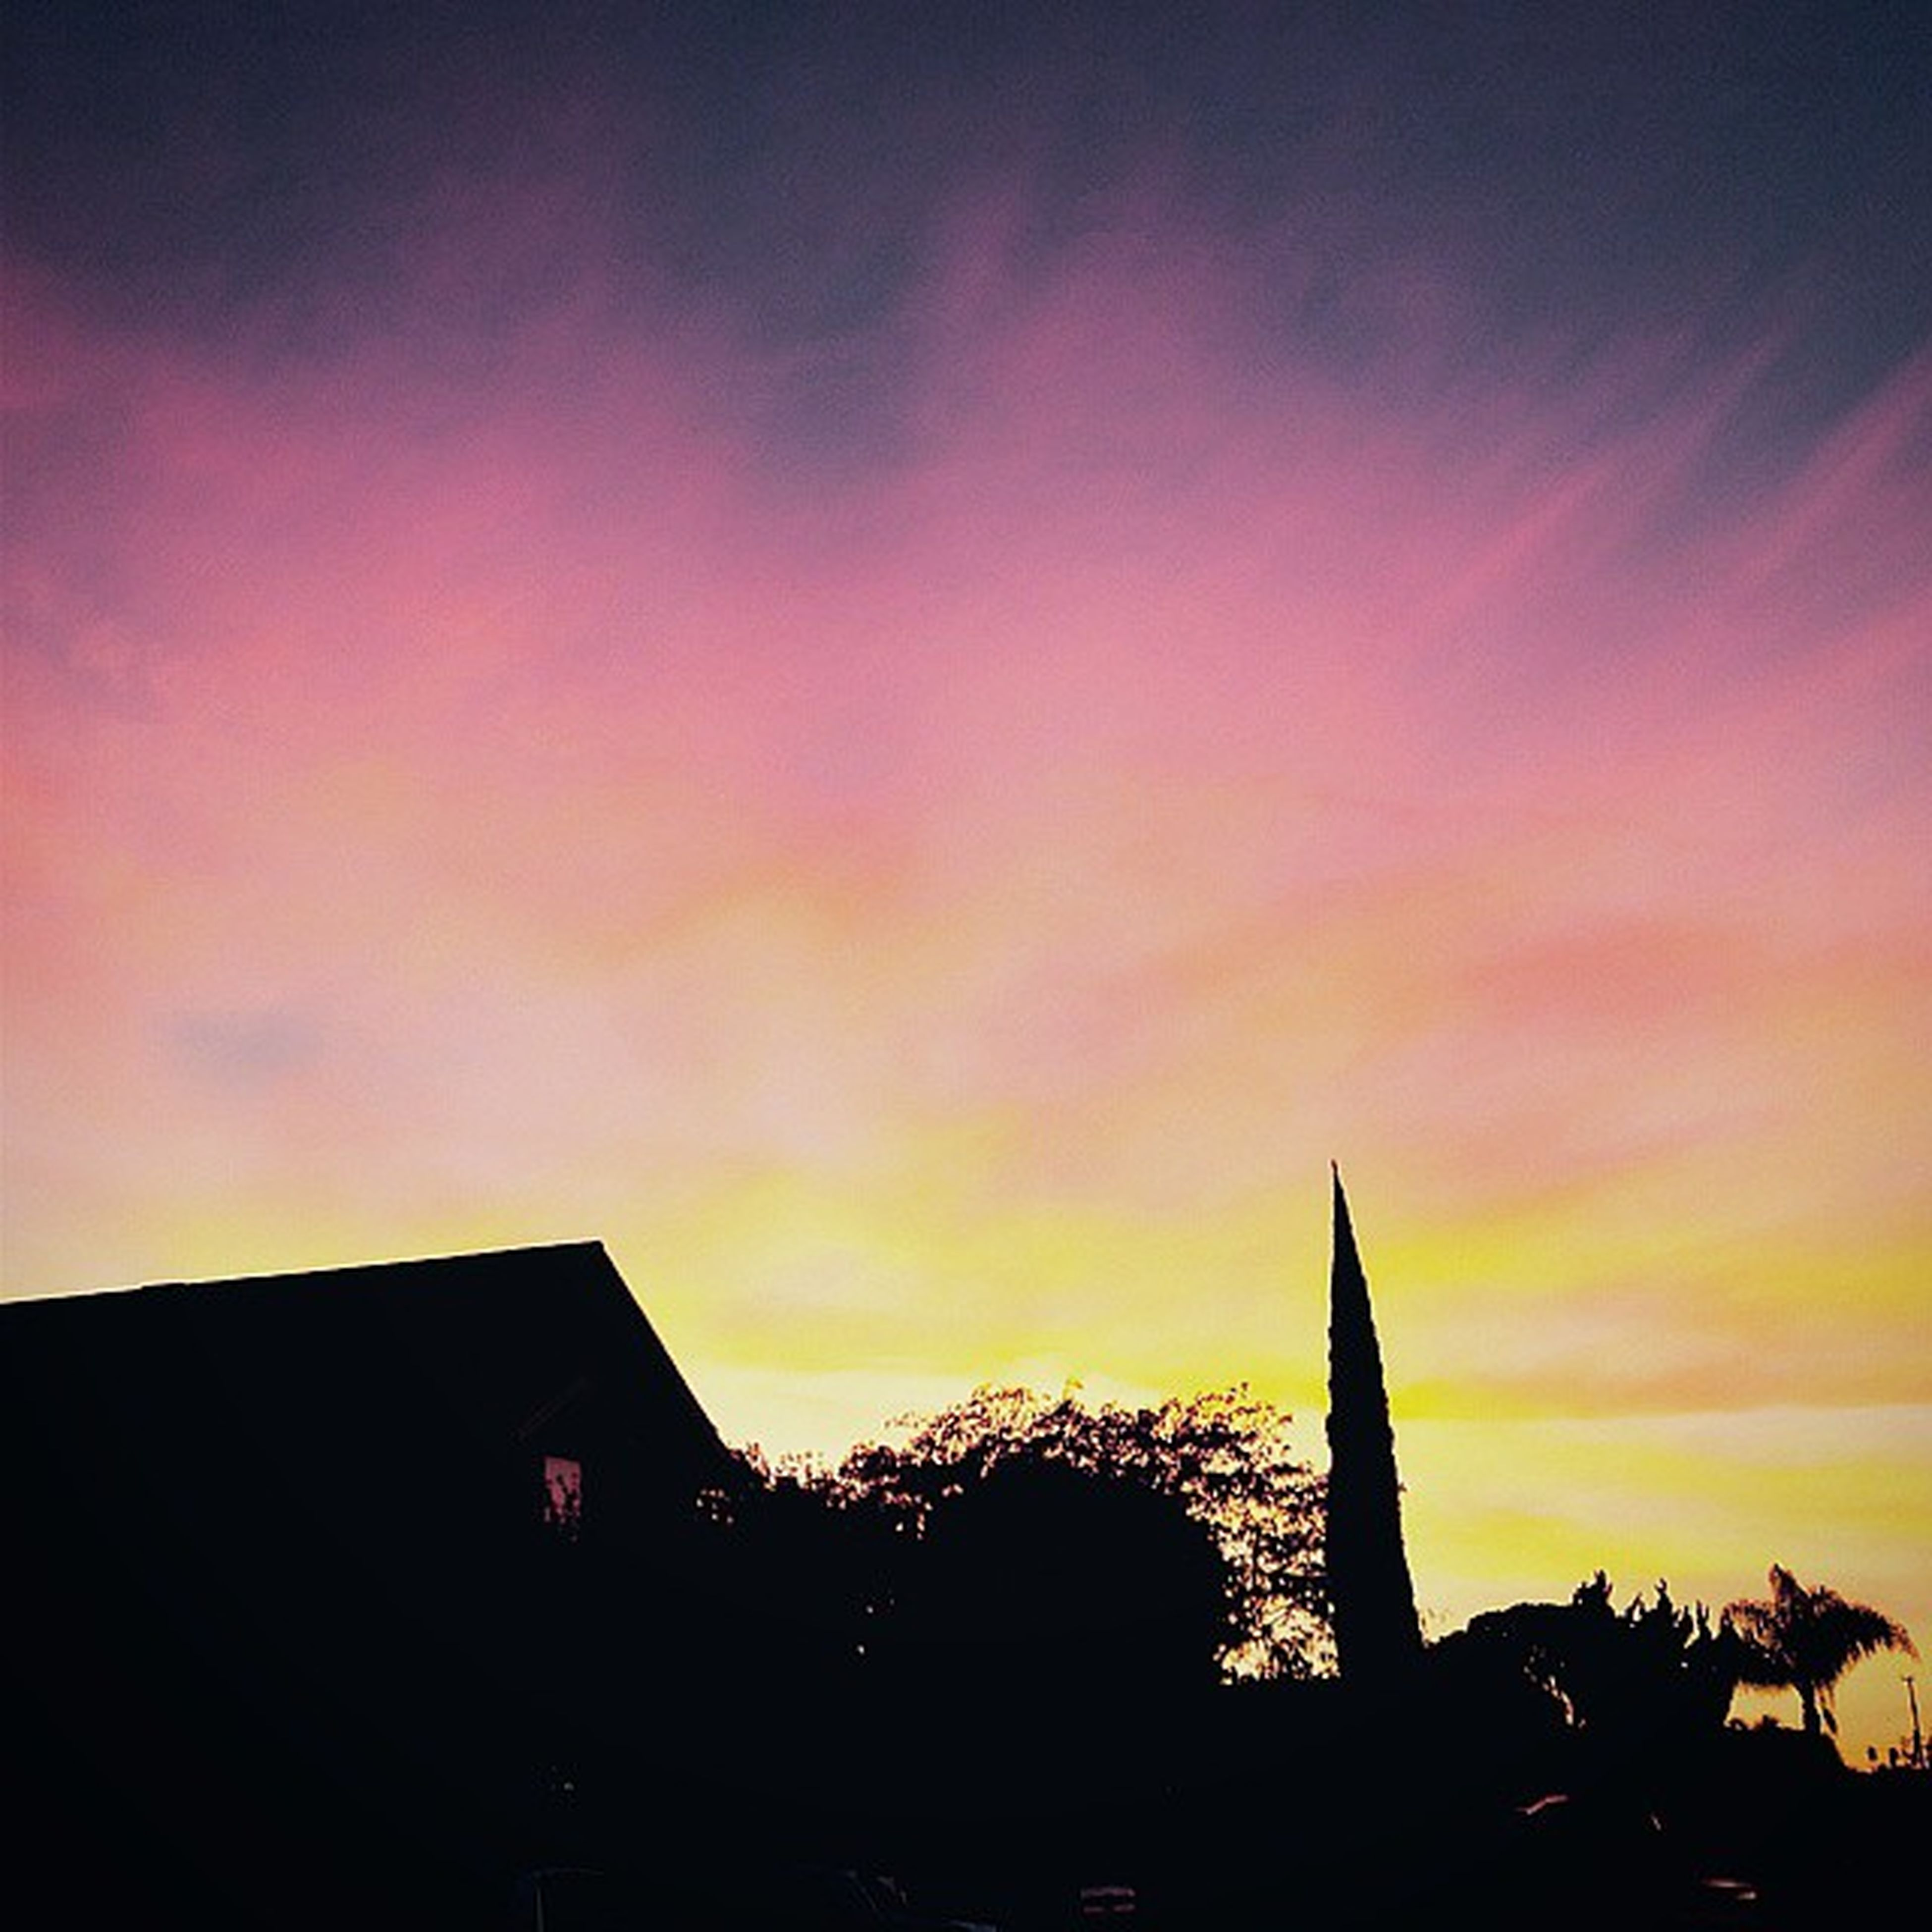 building exterior, architecture, built structure, sunset, silhouette, sky, low angle view, religion, place of worship, orange color, cloud - sky, high section, spirituality, church, outdoors, no people, cloud, dusk, house